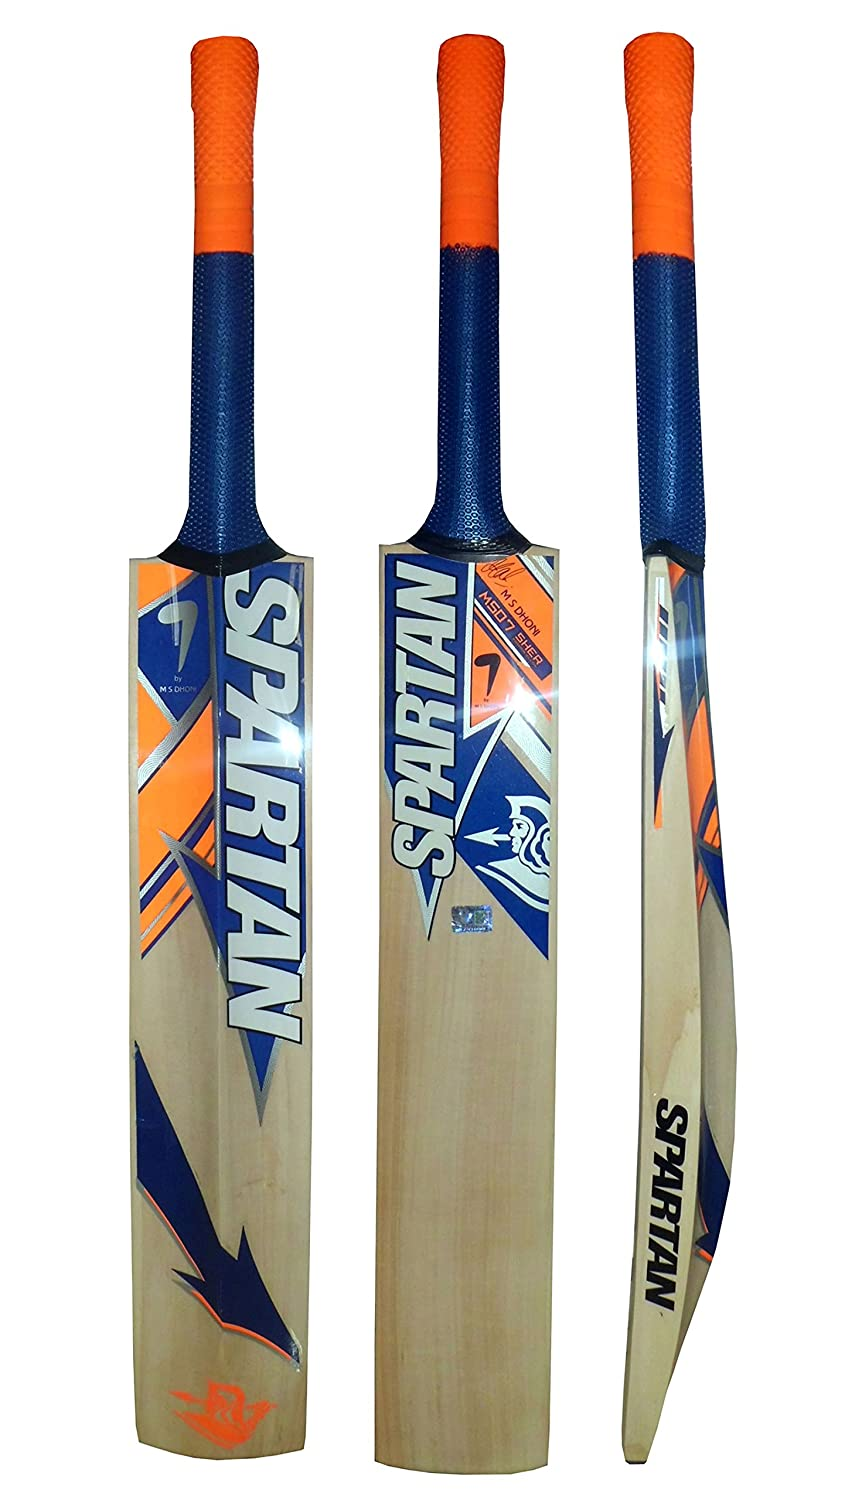 Spartan MSD 7 Sher Edition Limitée Kashmiri Saule Wood Cricket Bat - Carry Case Spartan Sports